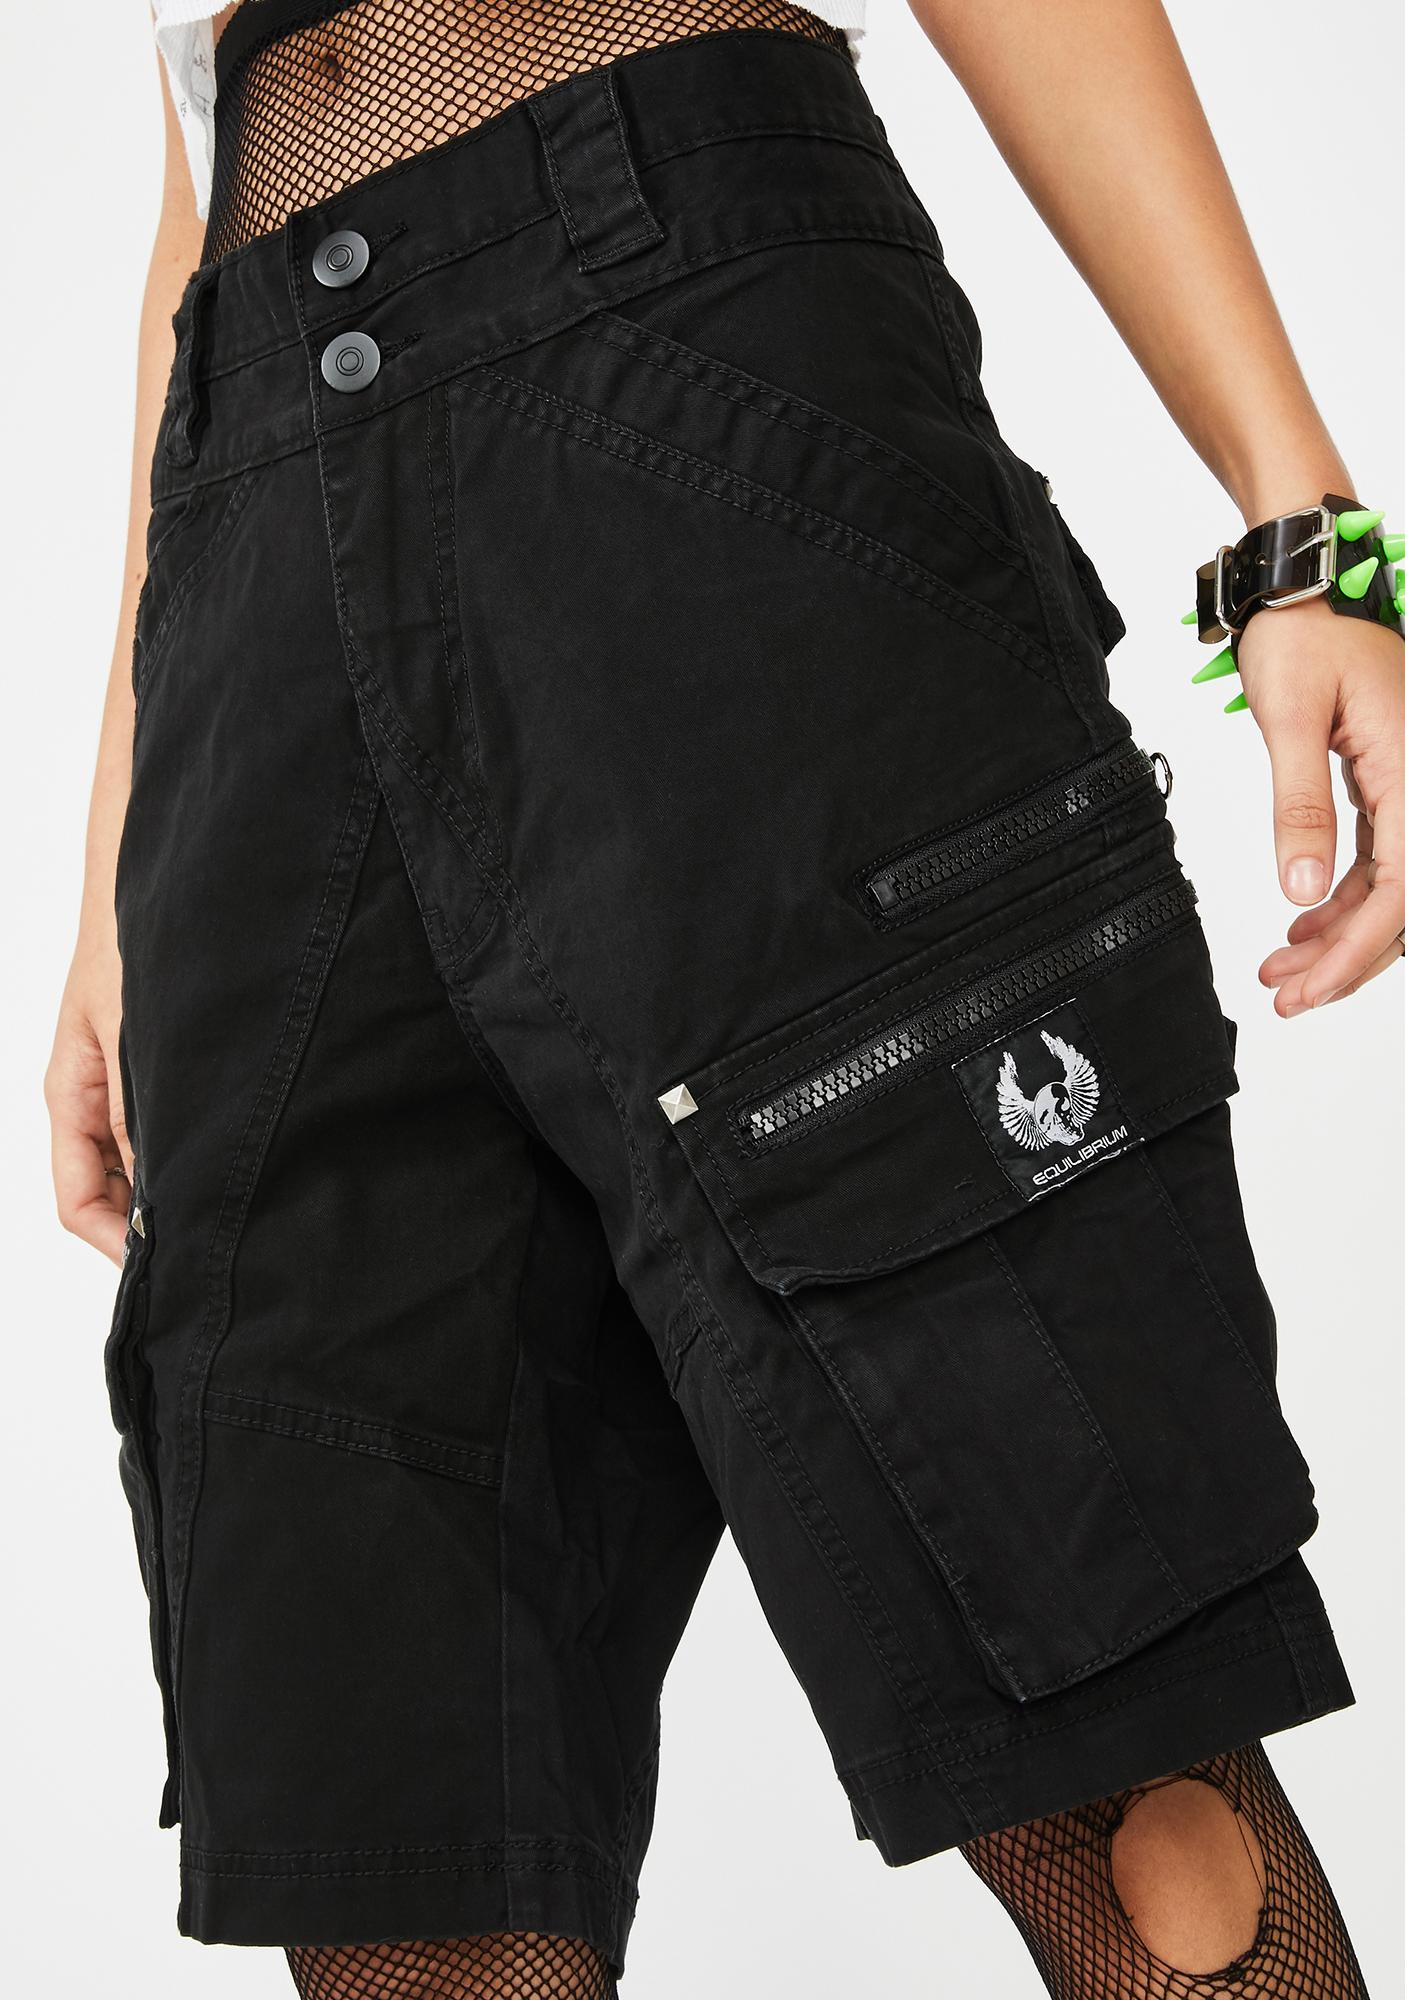 Equilibrium Clothing Multidimension Cargo Trousers